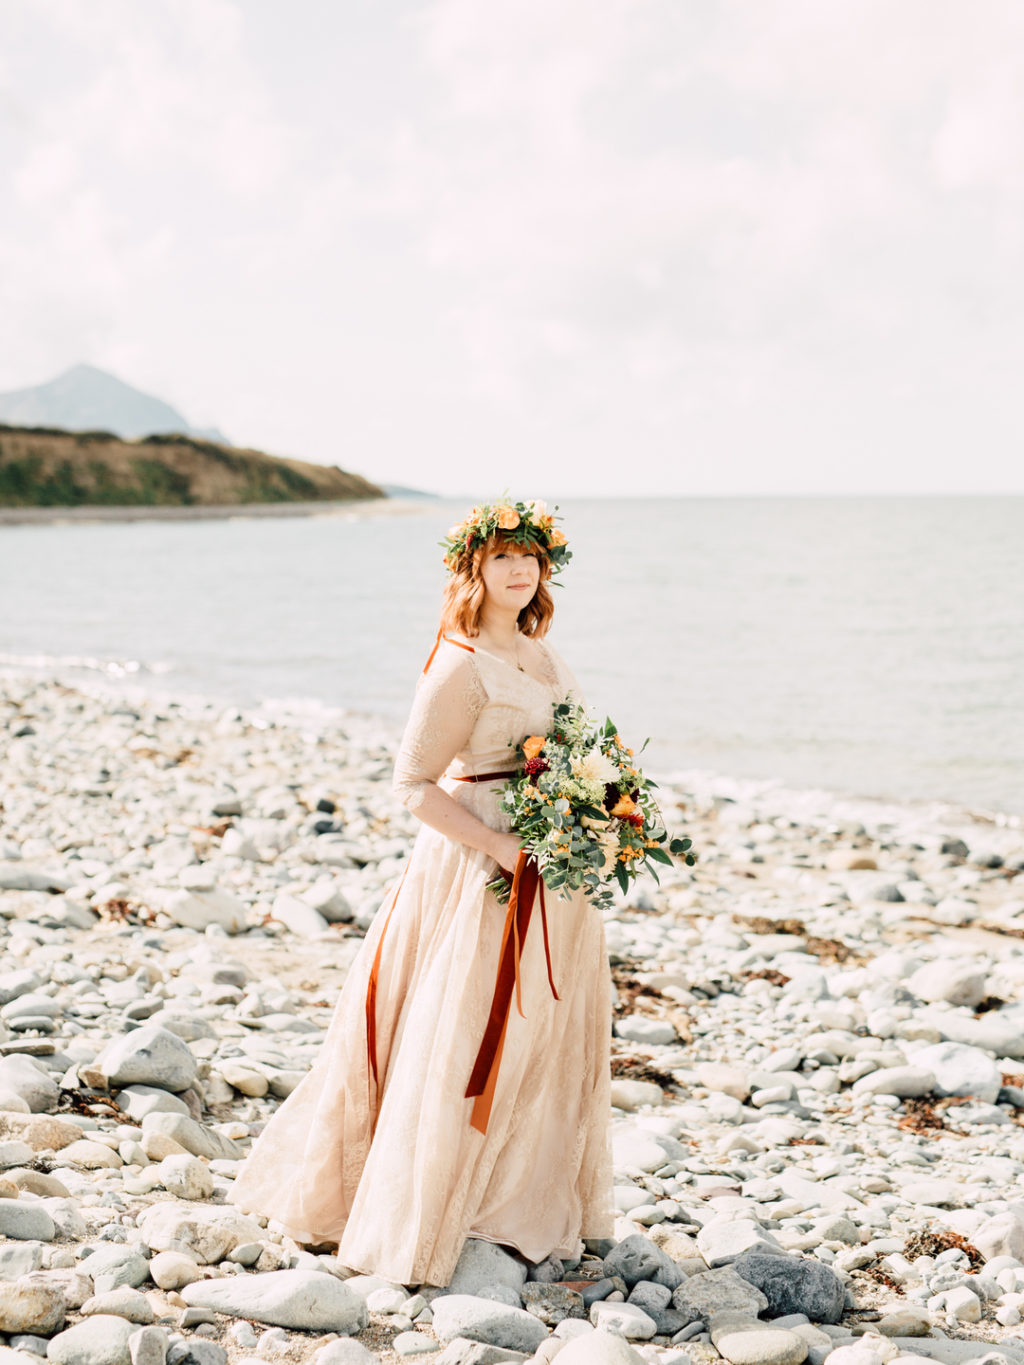 The bride was wearing a neutral lace wedding dress with illusion sleeves and a floral crown